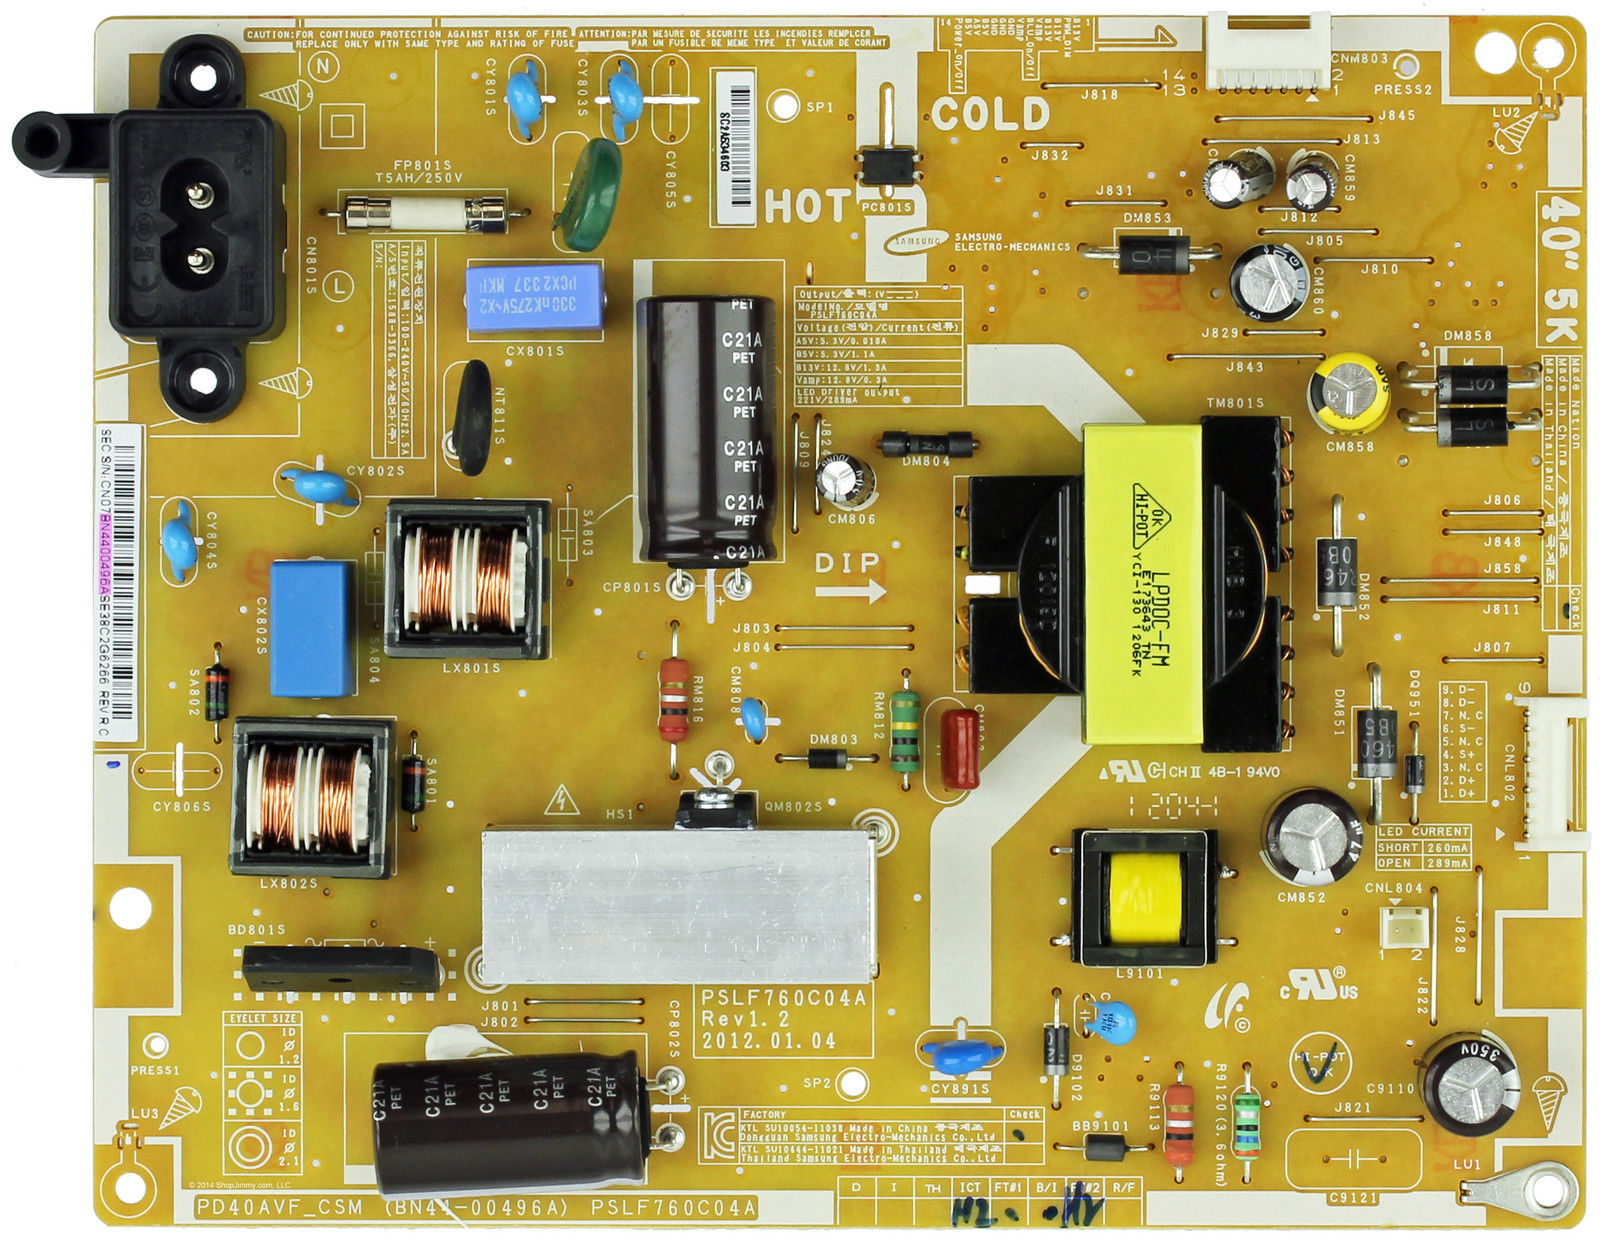 Samsung BN44-00496A (PSLF760C04A) Power Supply LED Board